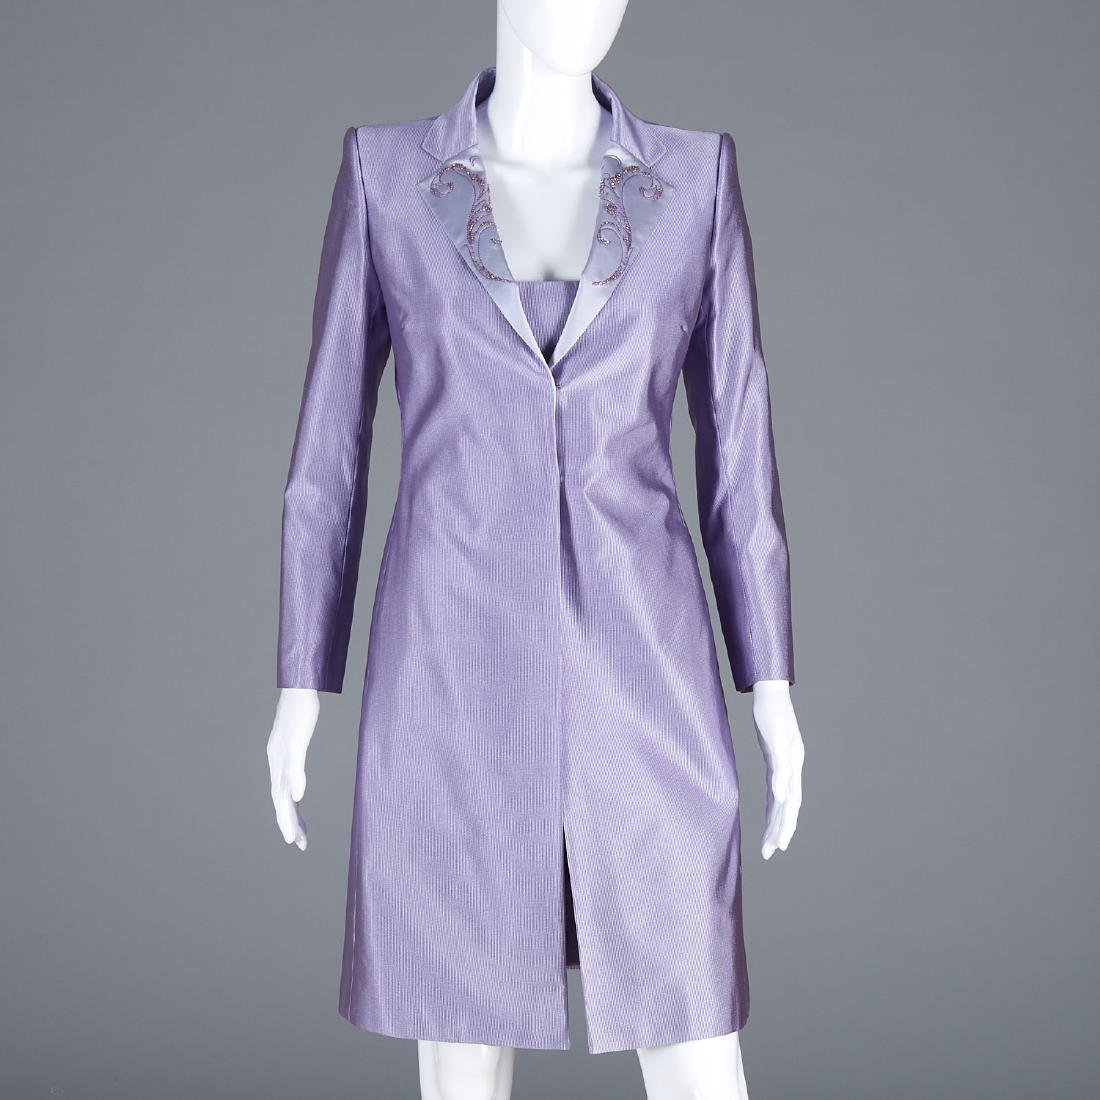 Richard Tyler Couture suit dress and evening coat